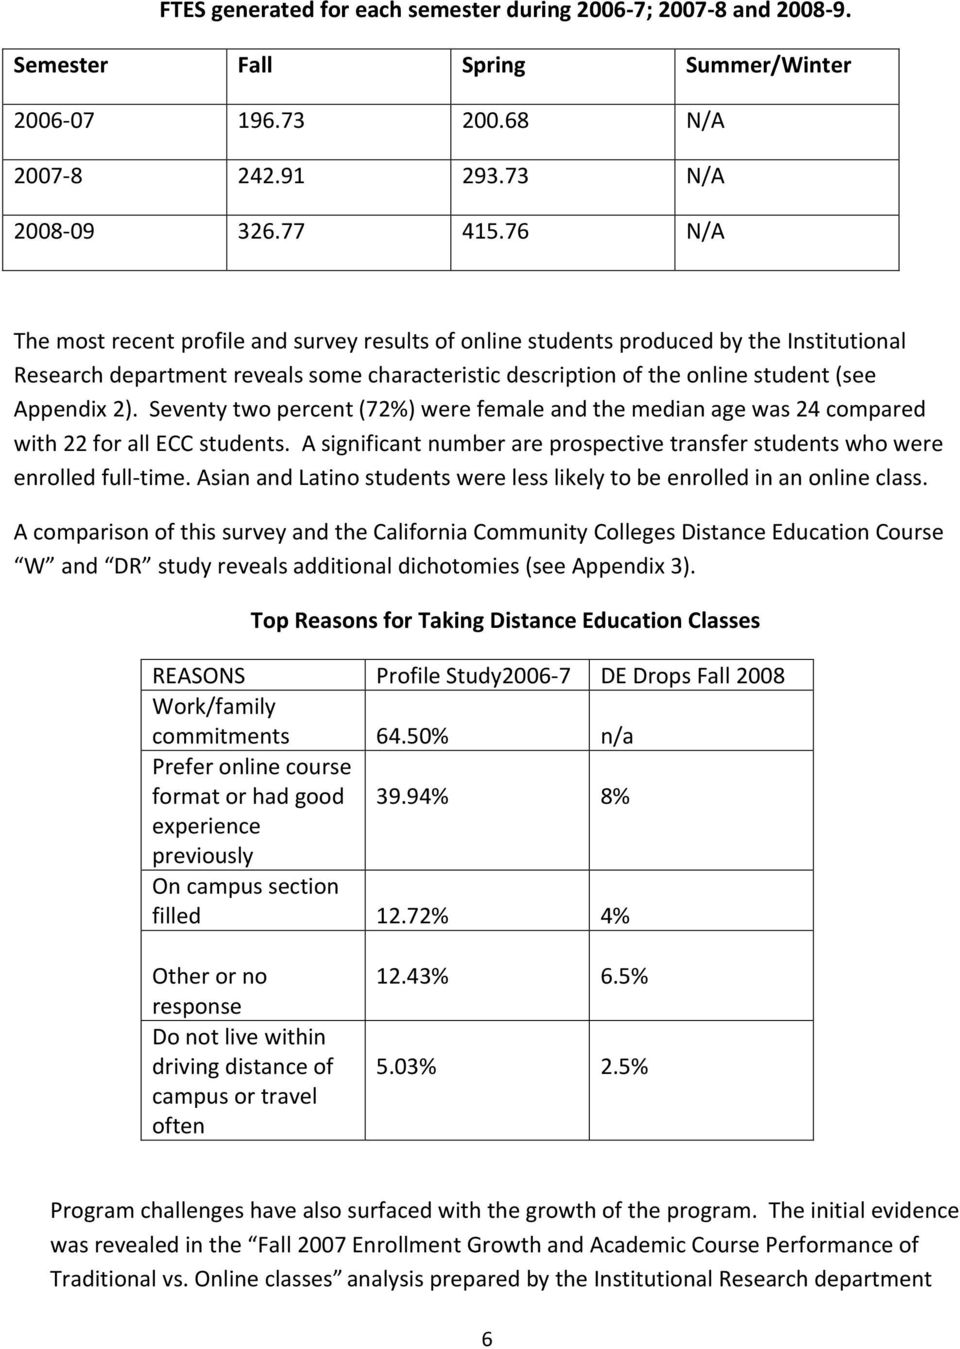 Seventy two percent (72%) were female and the median age was 24 compared with 22 for all ECC students. A significant number are prospective transfer students who were enrolled full time.